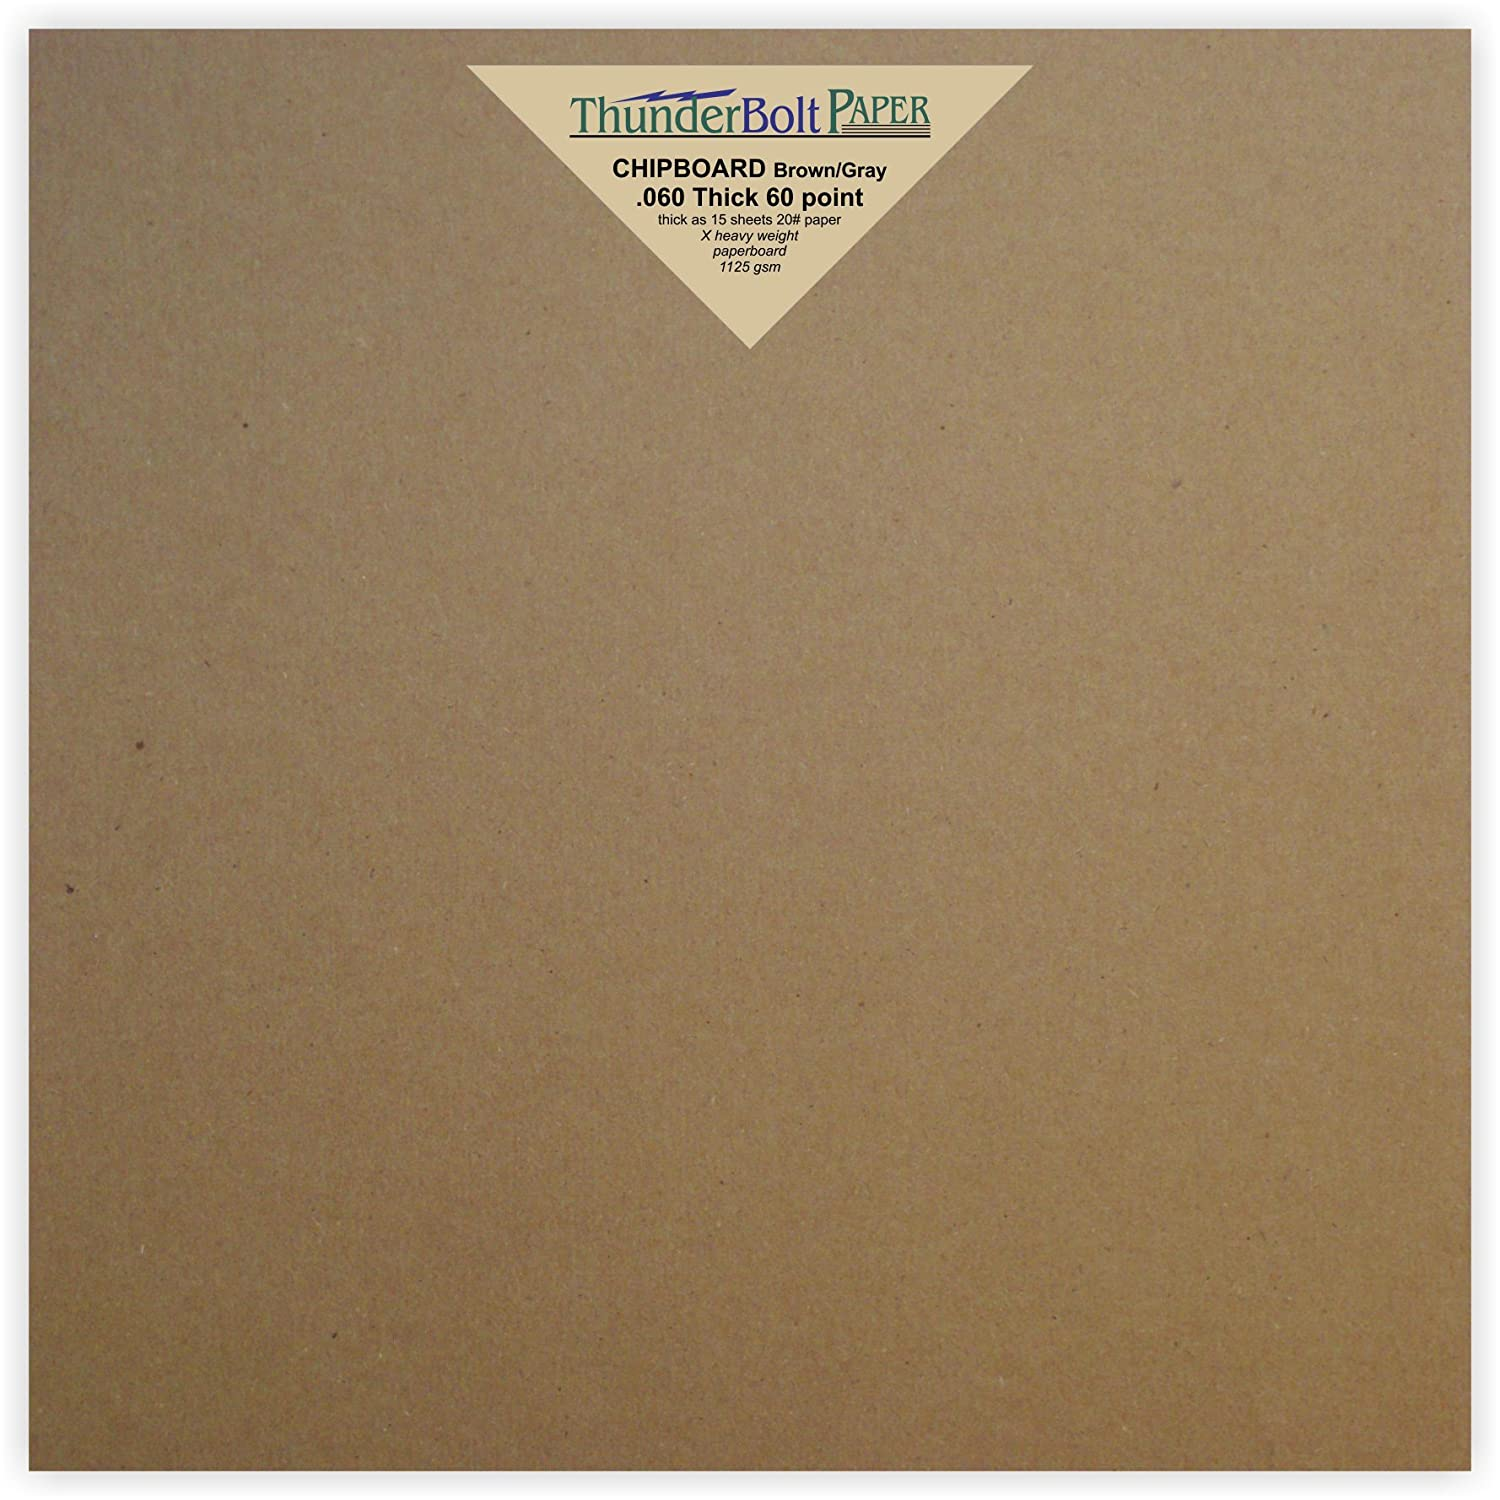 24 Sheets Brown Chipboard 60 Point Extra Thick 8 X 8 Inches Album|Scrapbook Size .060 Caliper X Heavy Cardboard as Thick as 15 Sheets 20# Paper TBP